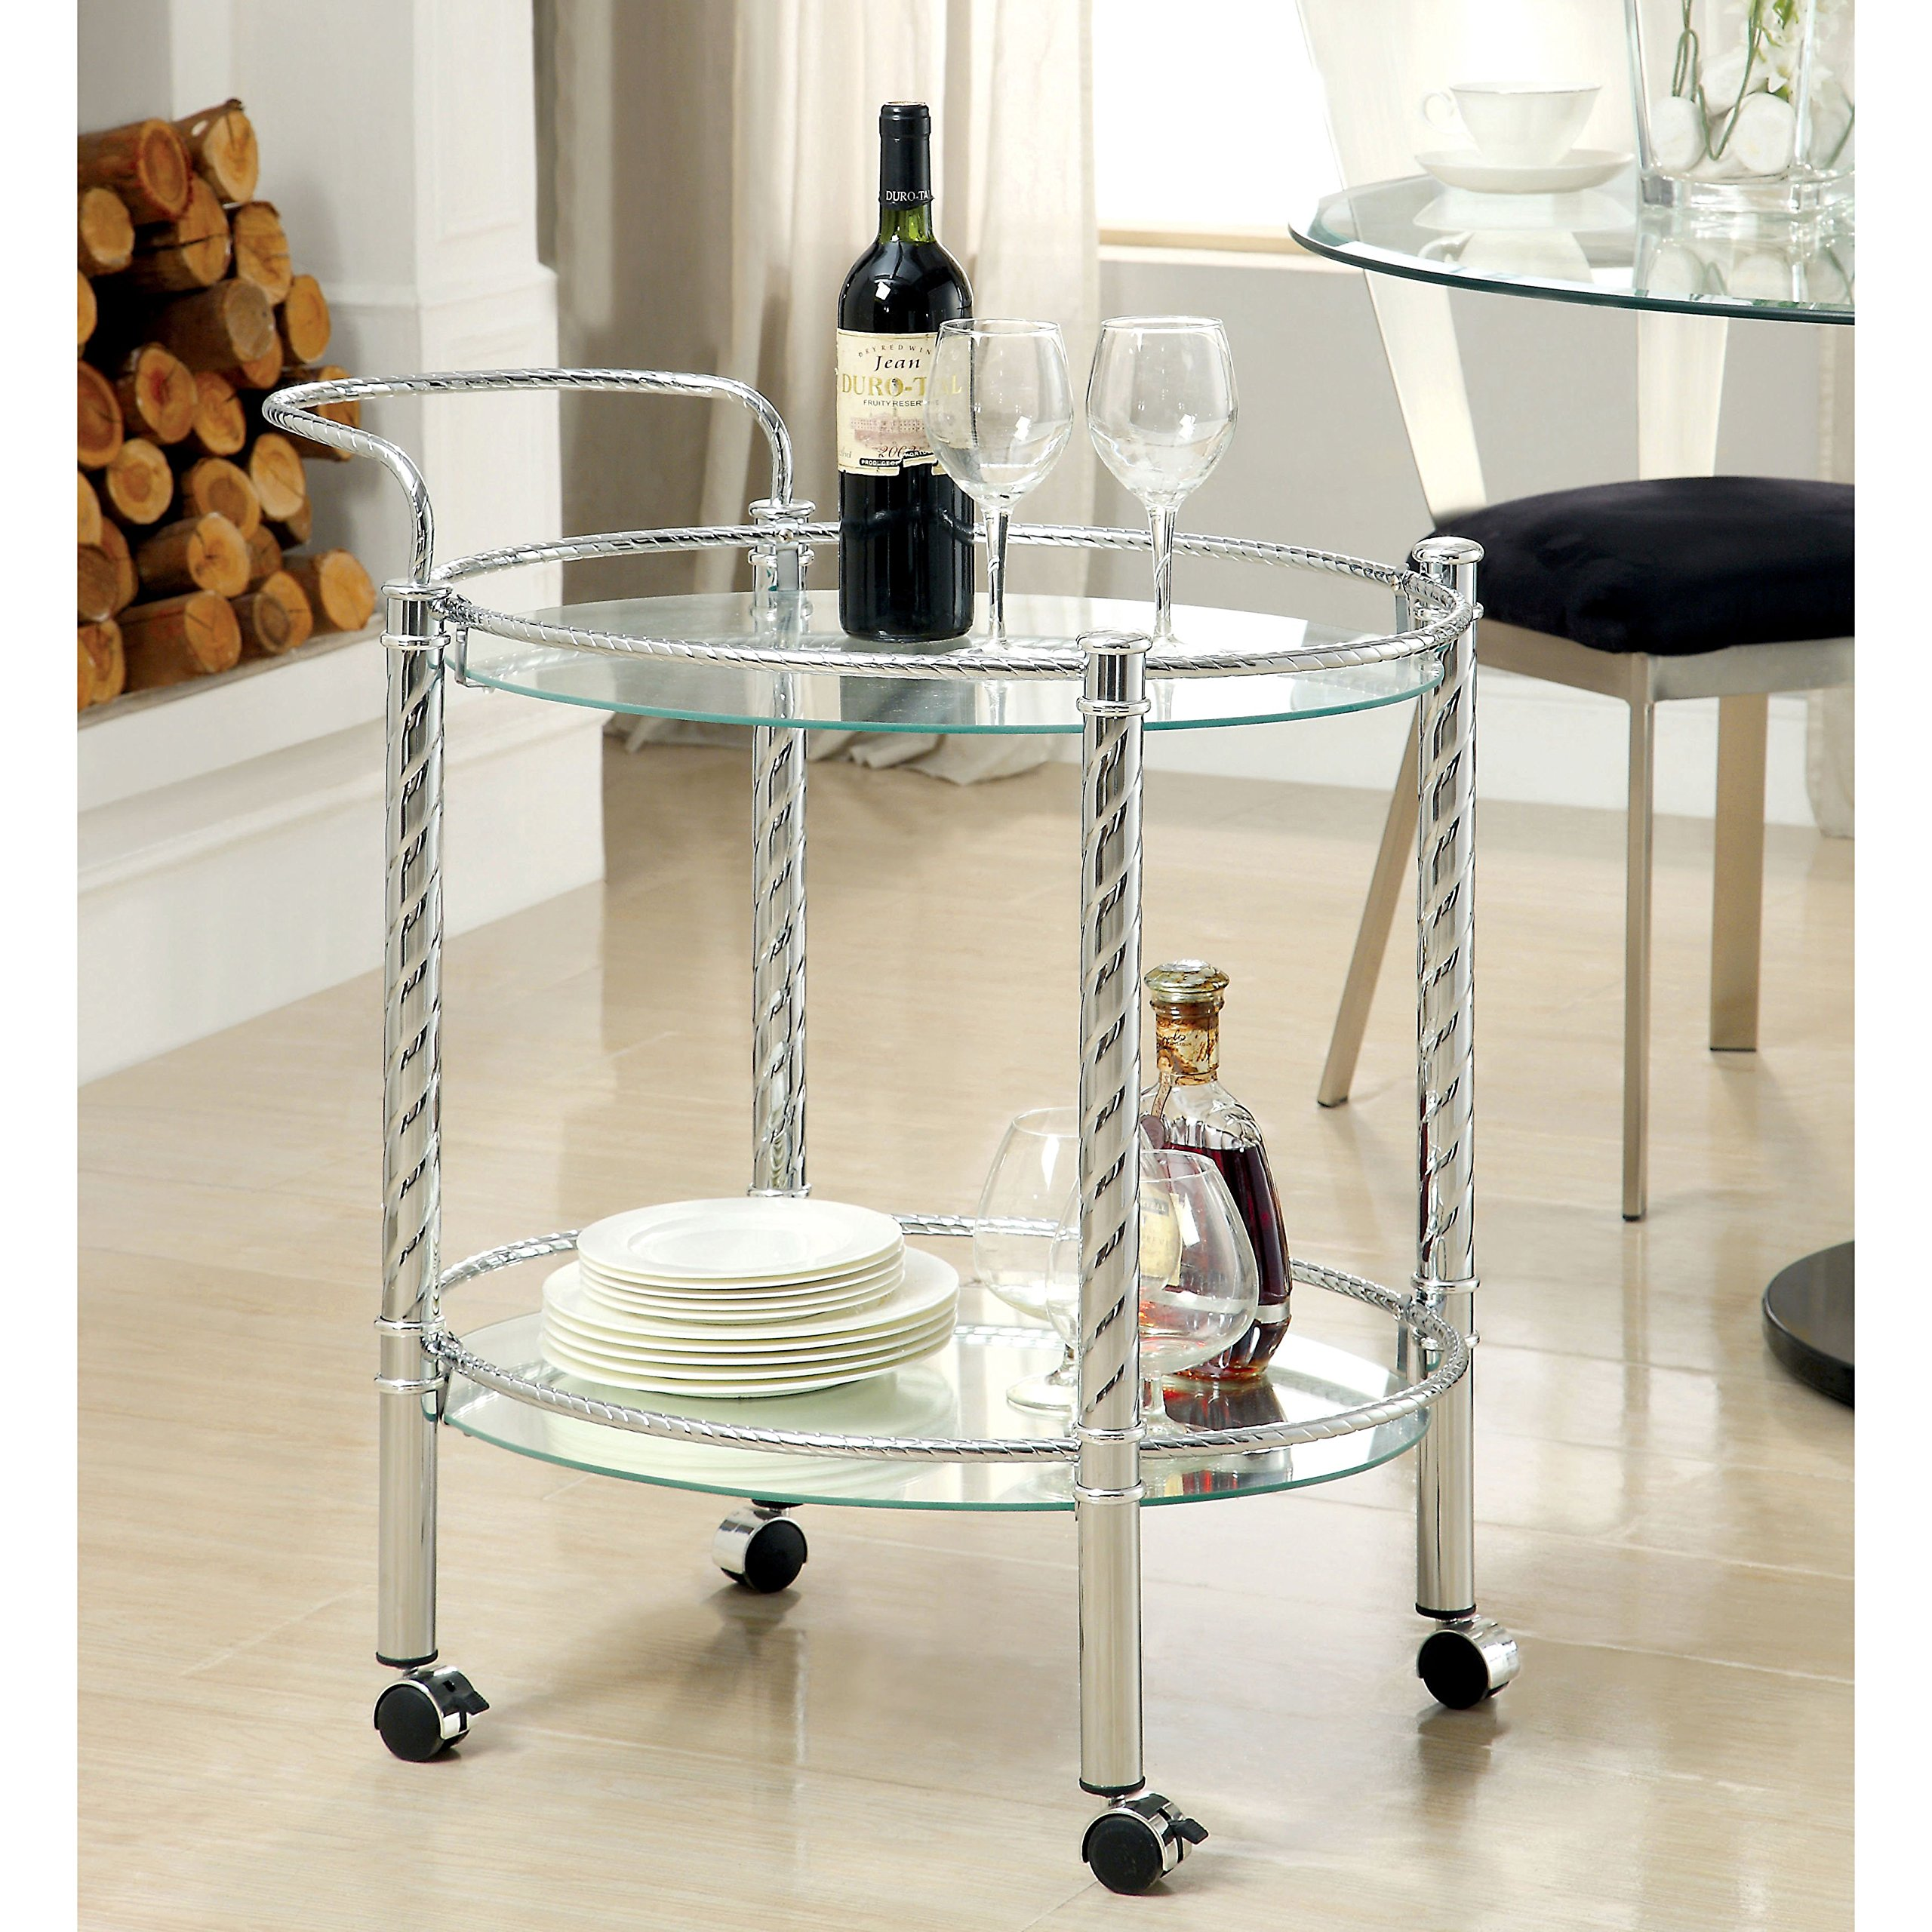 Contemporary Style Kitchen Serving Rolling Cart Round Shaped with Tempered Glass Top and Bottom Shelf | Metal Frame, Chrome Finish - Includes Modhaus Living Pen